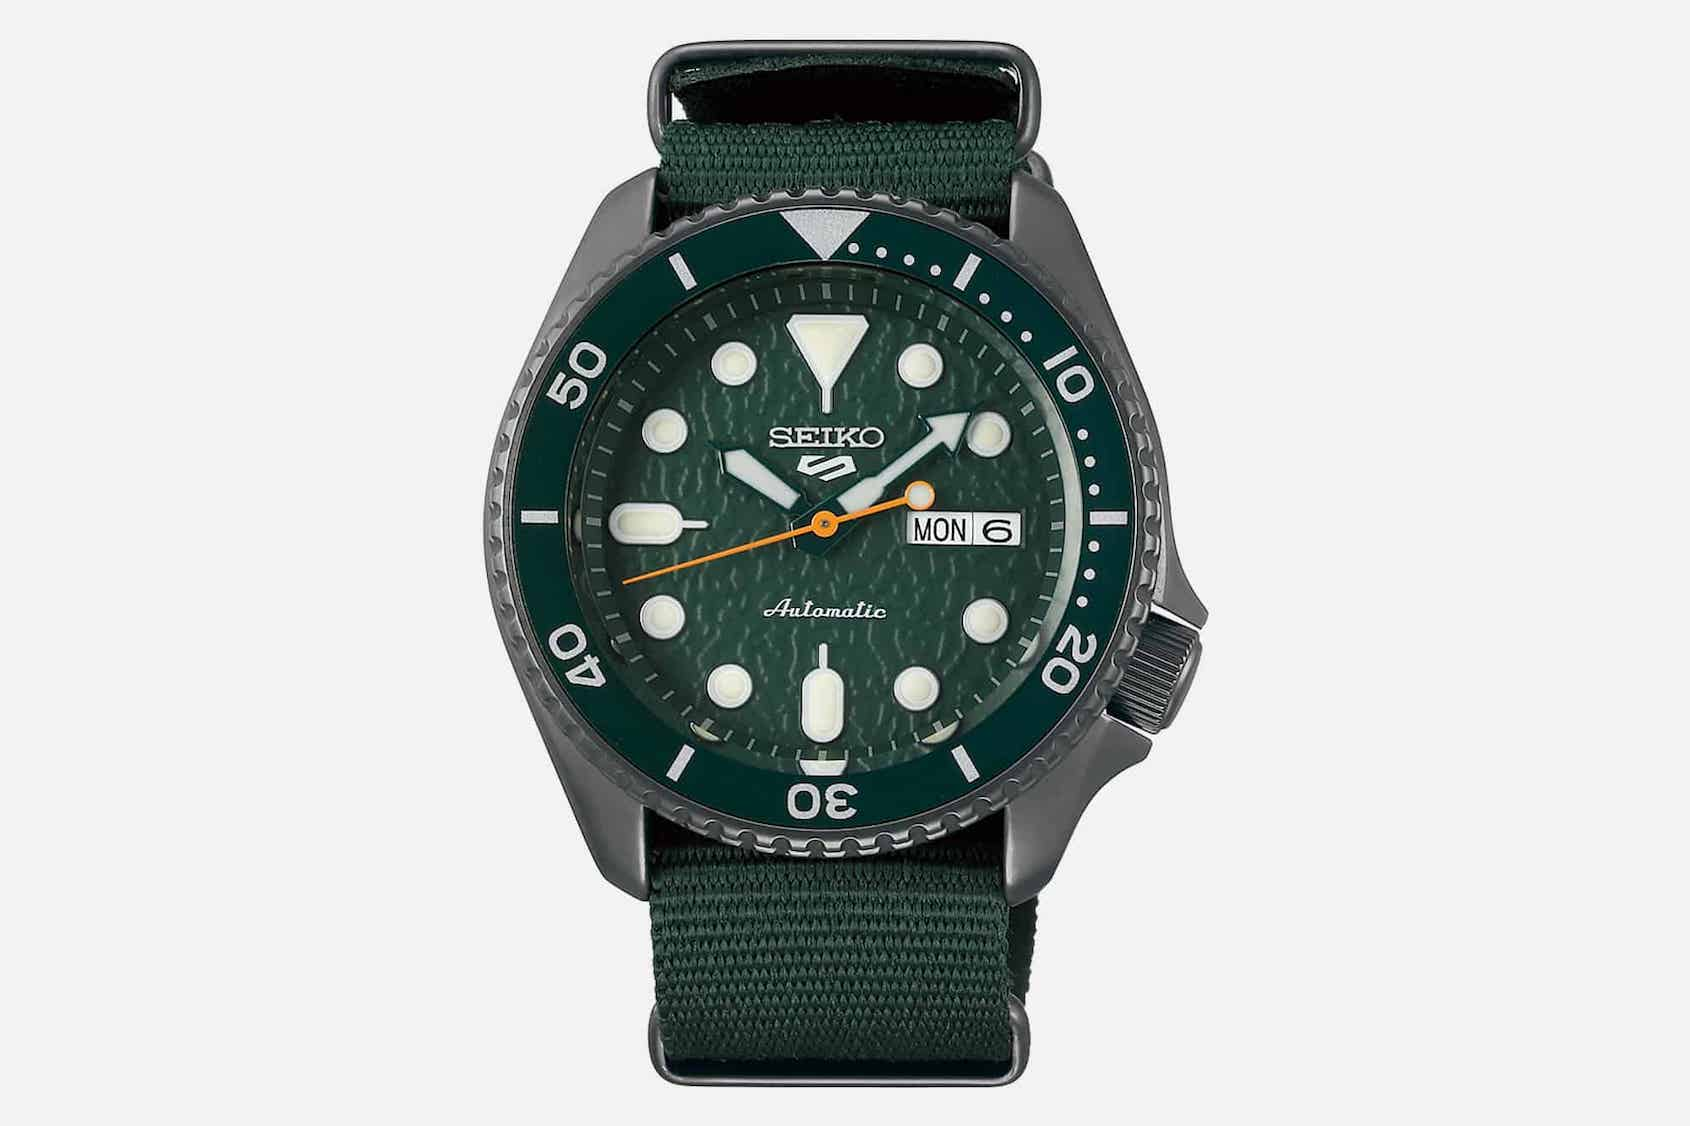 3 affordable timepieces that get the nod from watch snobs